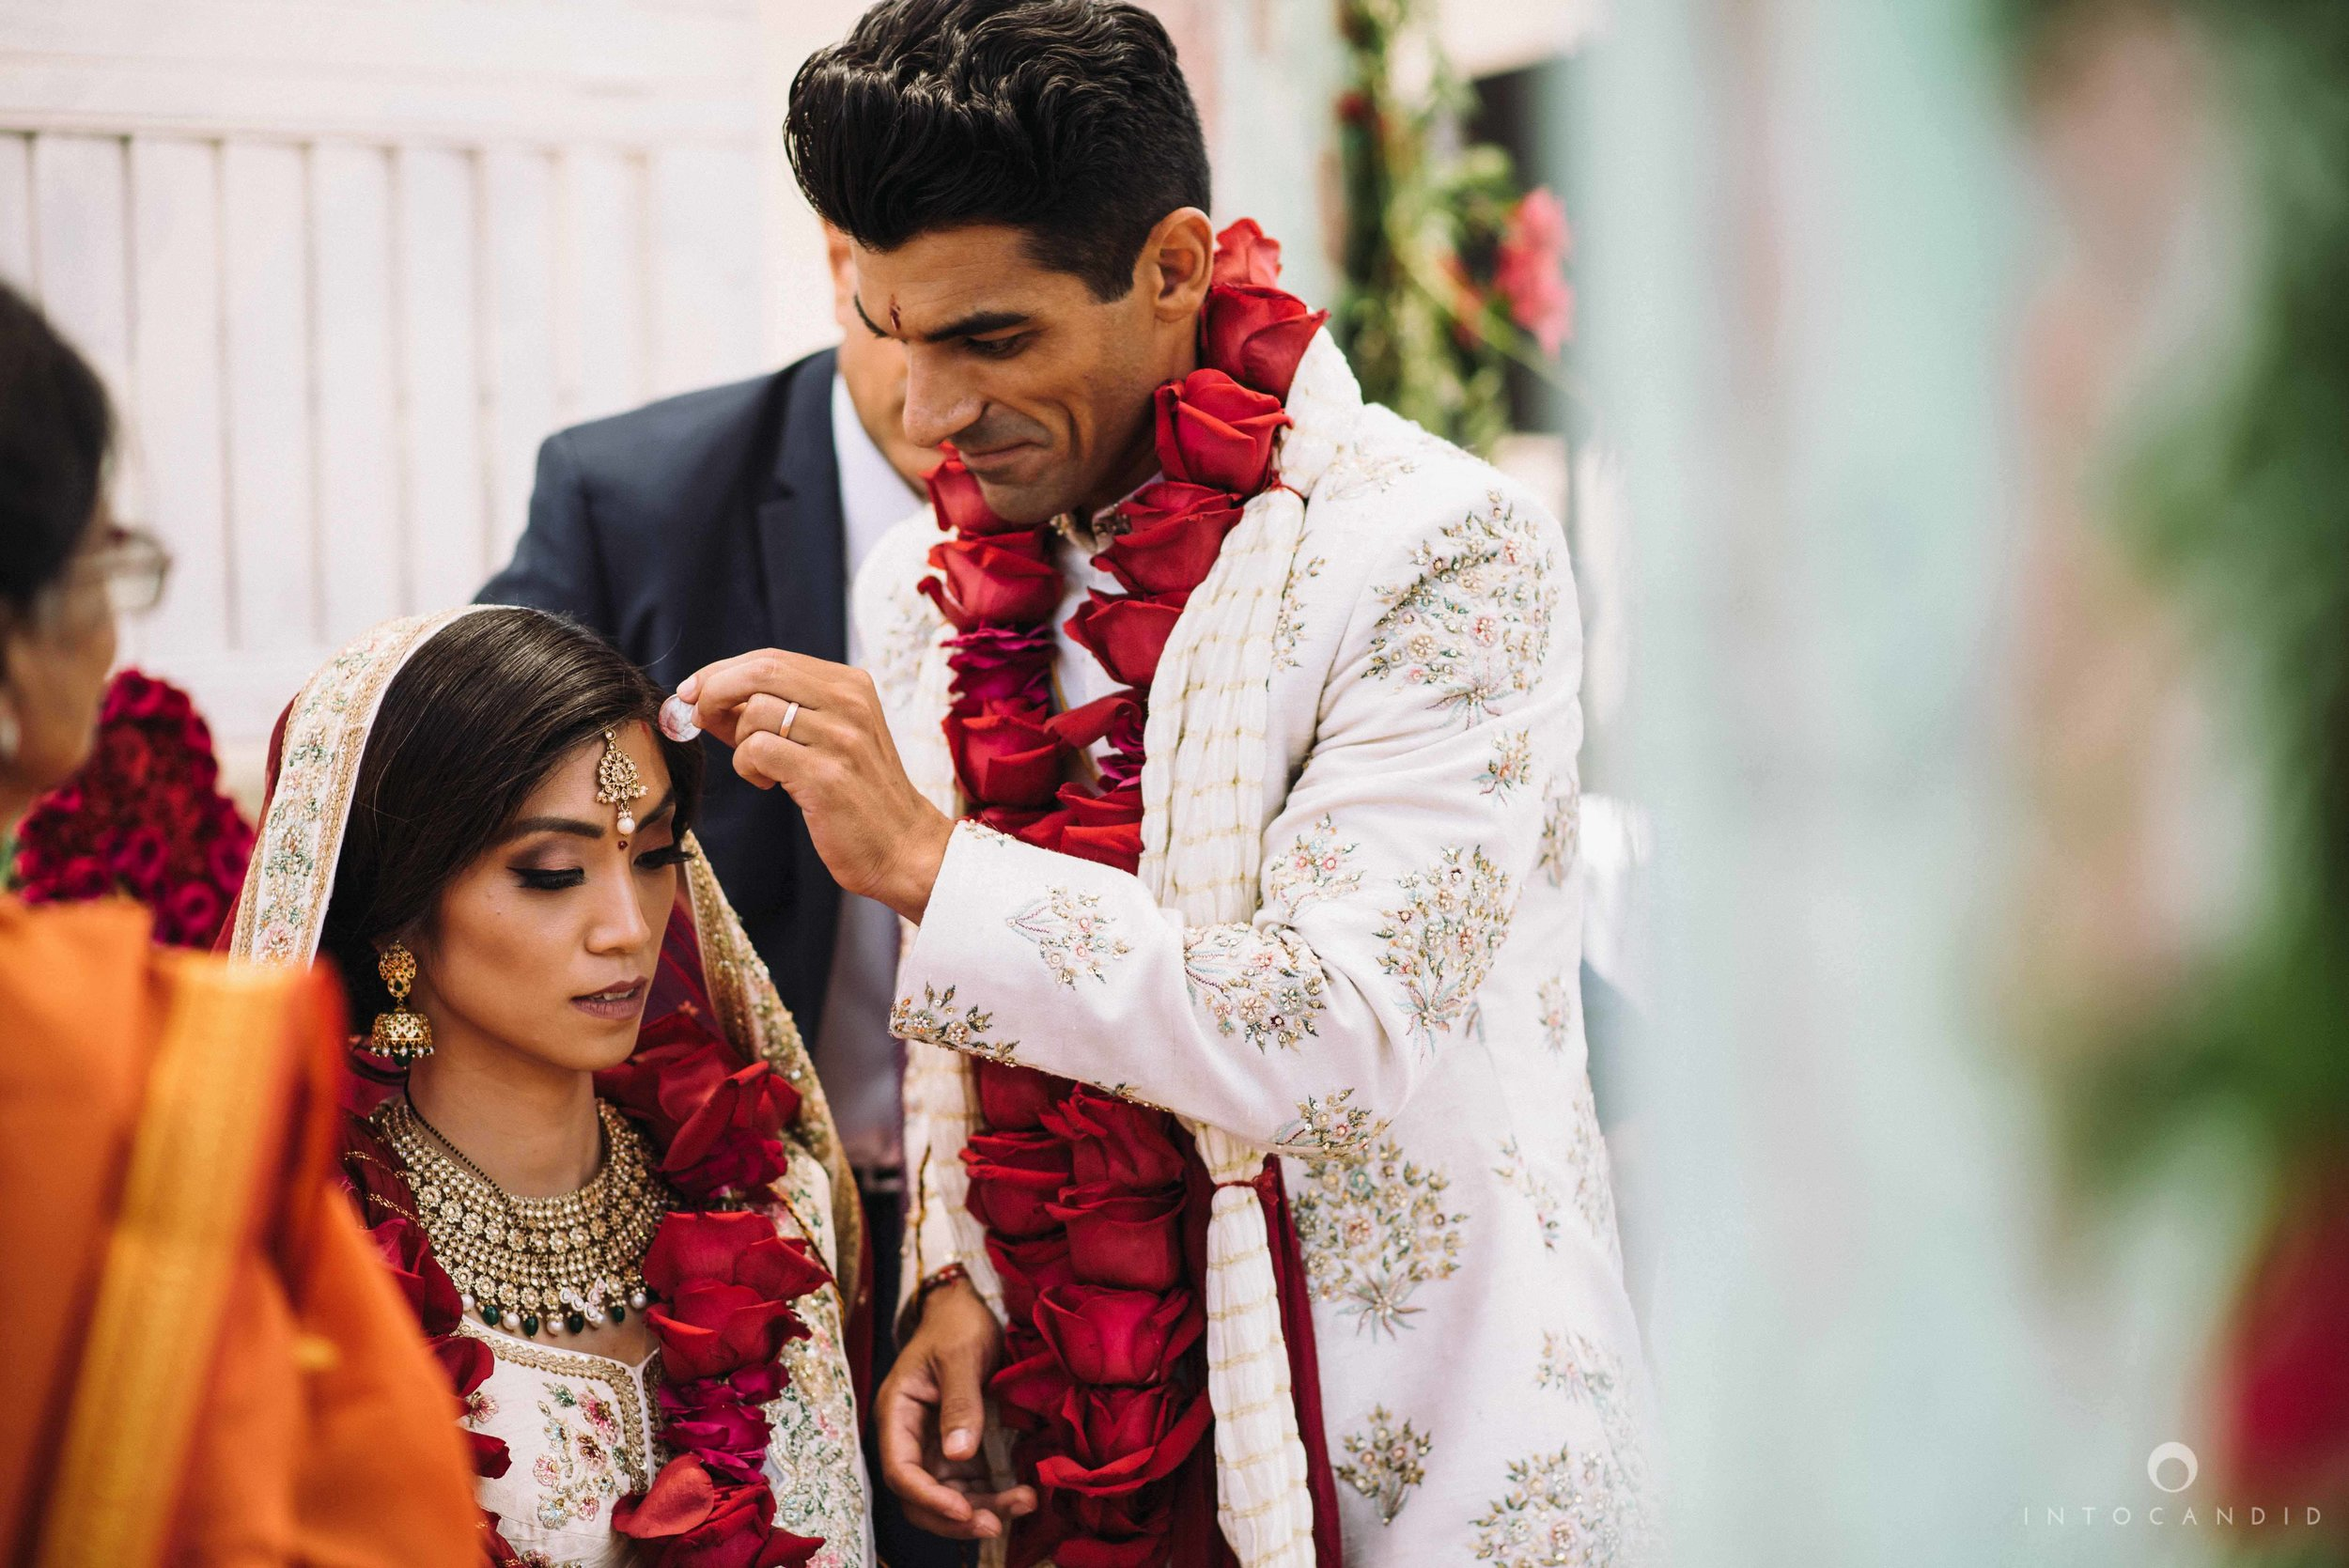 LosAngeles_Indian_Wedding_Photographer_AS_114.jpg